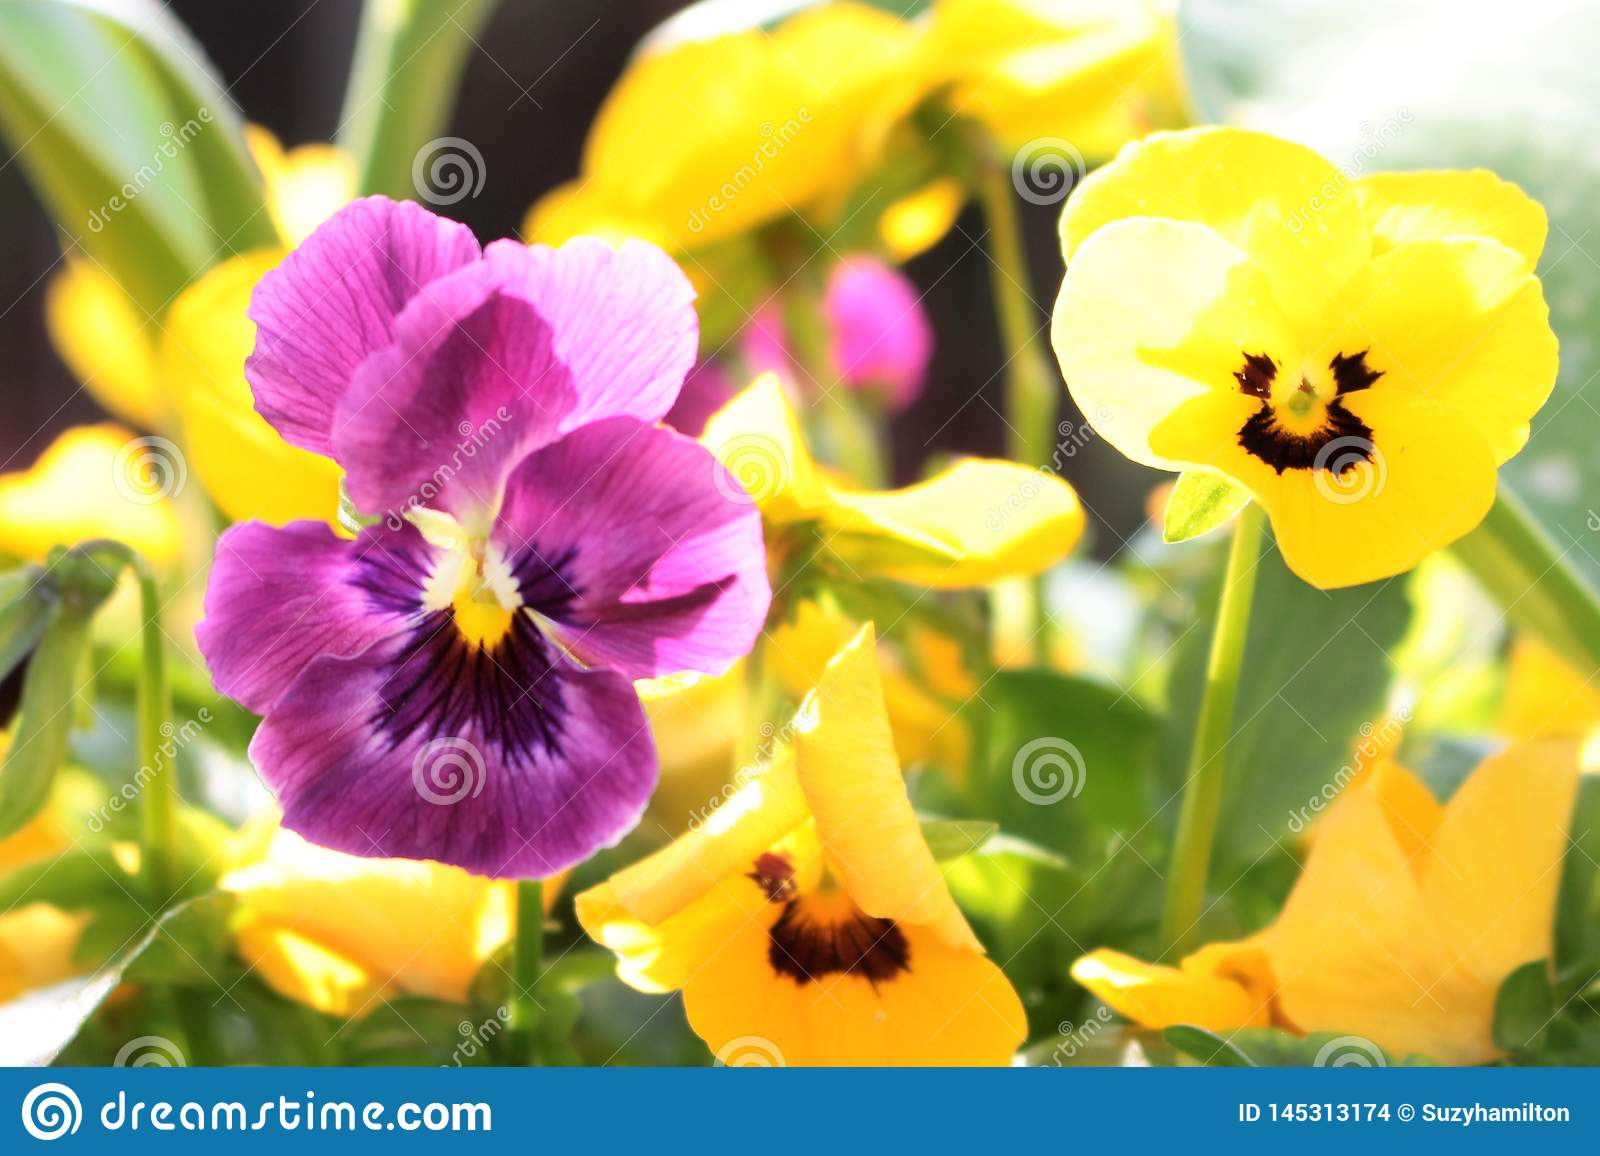 Violas purple and yellow close up in a garden border